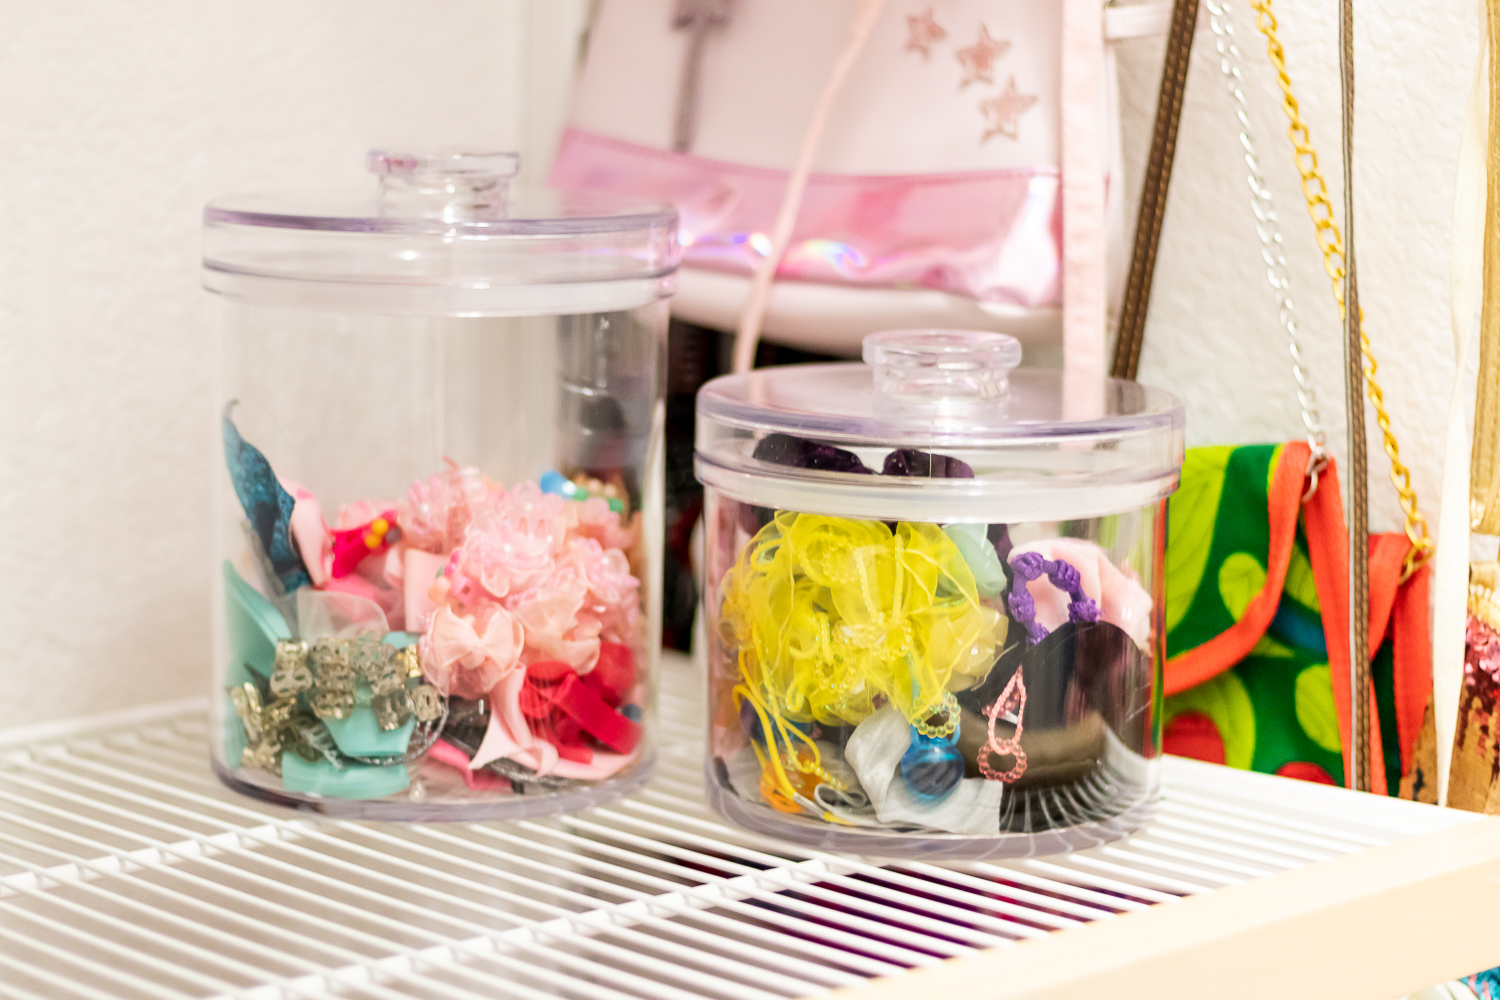 hair accessorizes in clear canisters